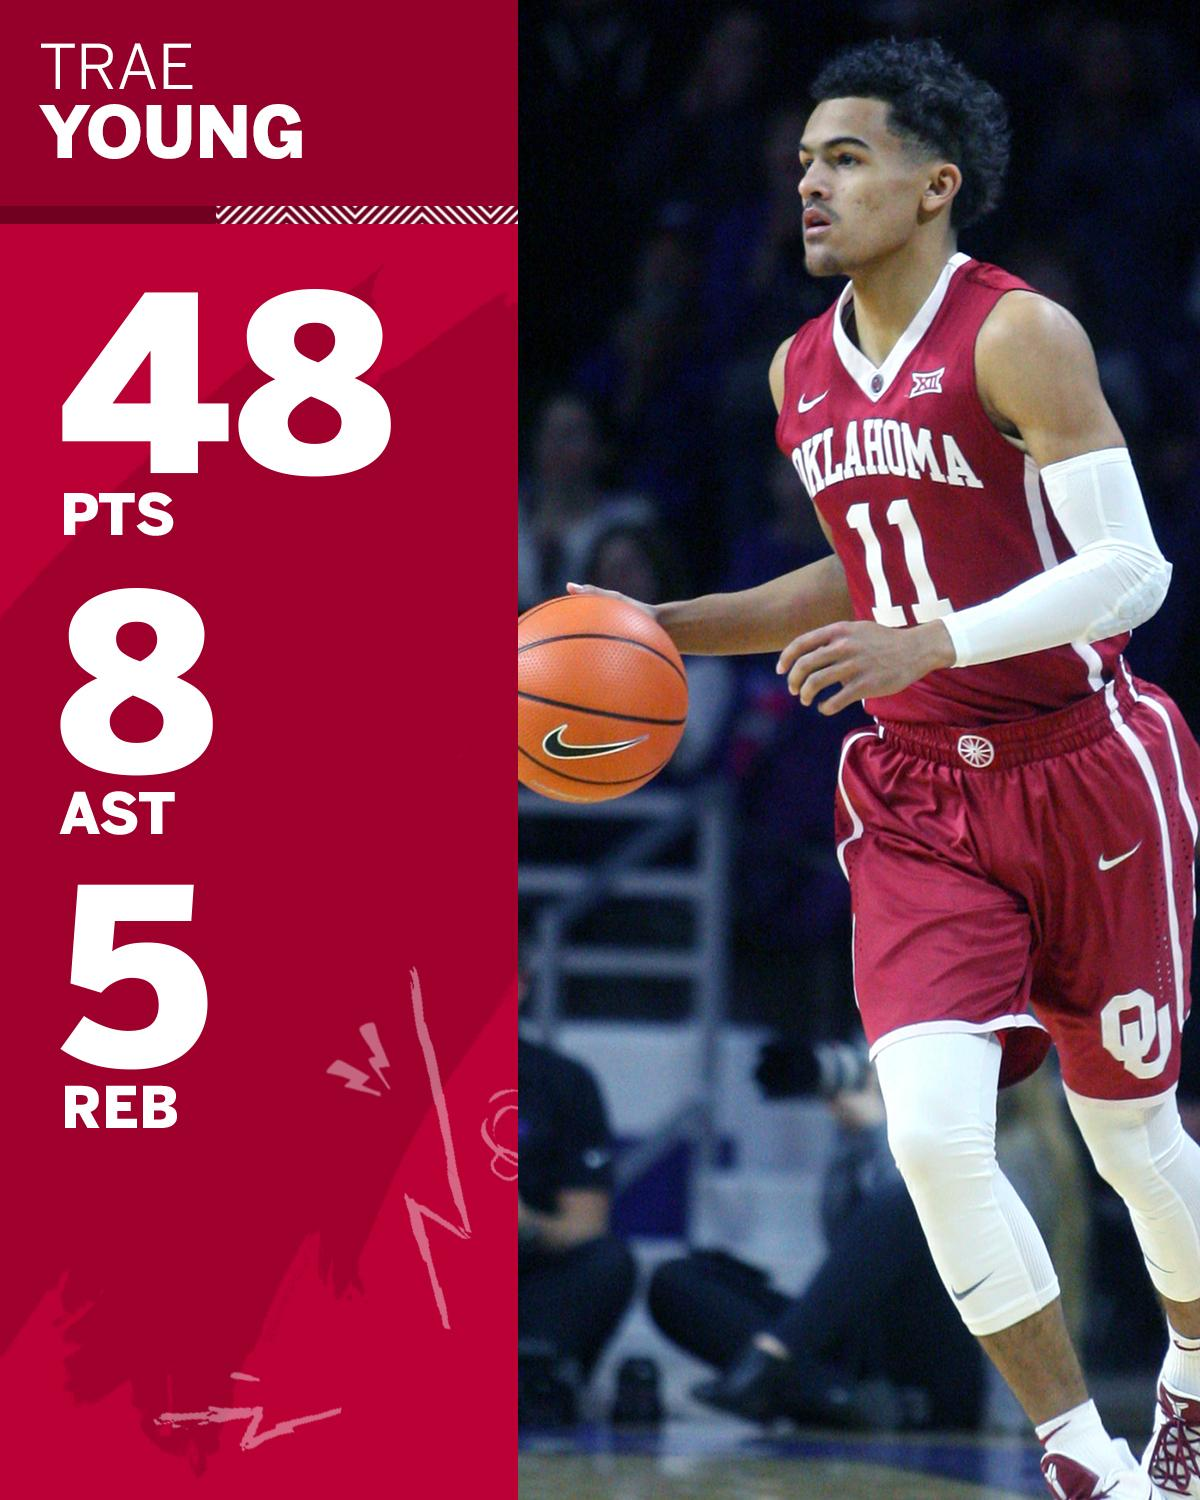 There have been eight 43+ point performances in D-I this year. Trae Young has 3 of them. https://t.co/RbS1ARQ6js